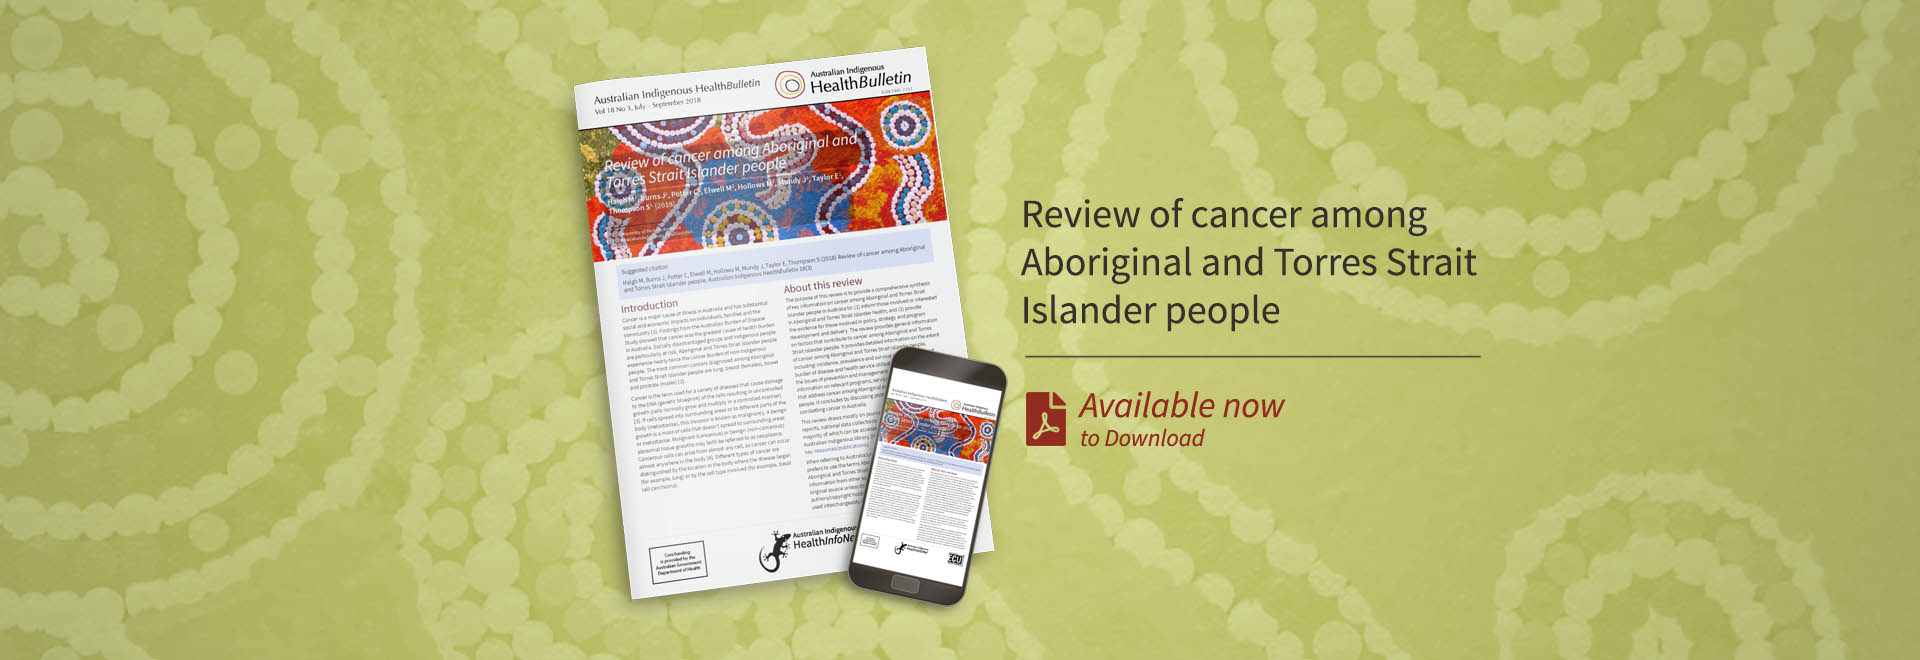 Cancer Review